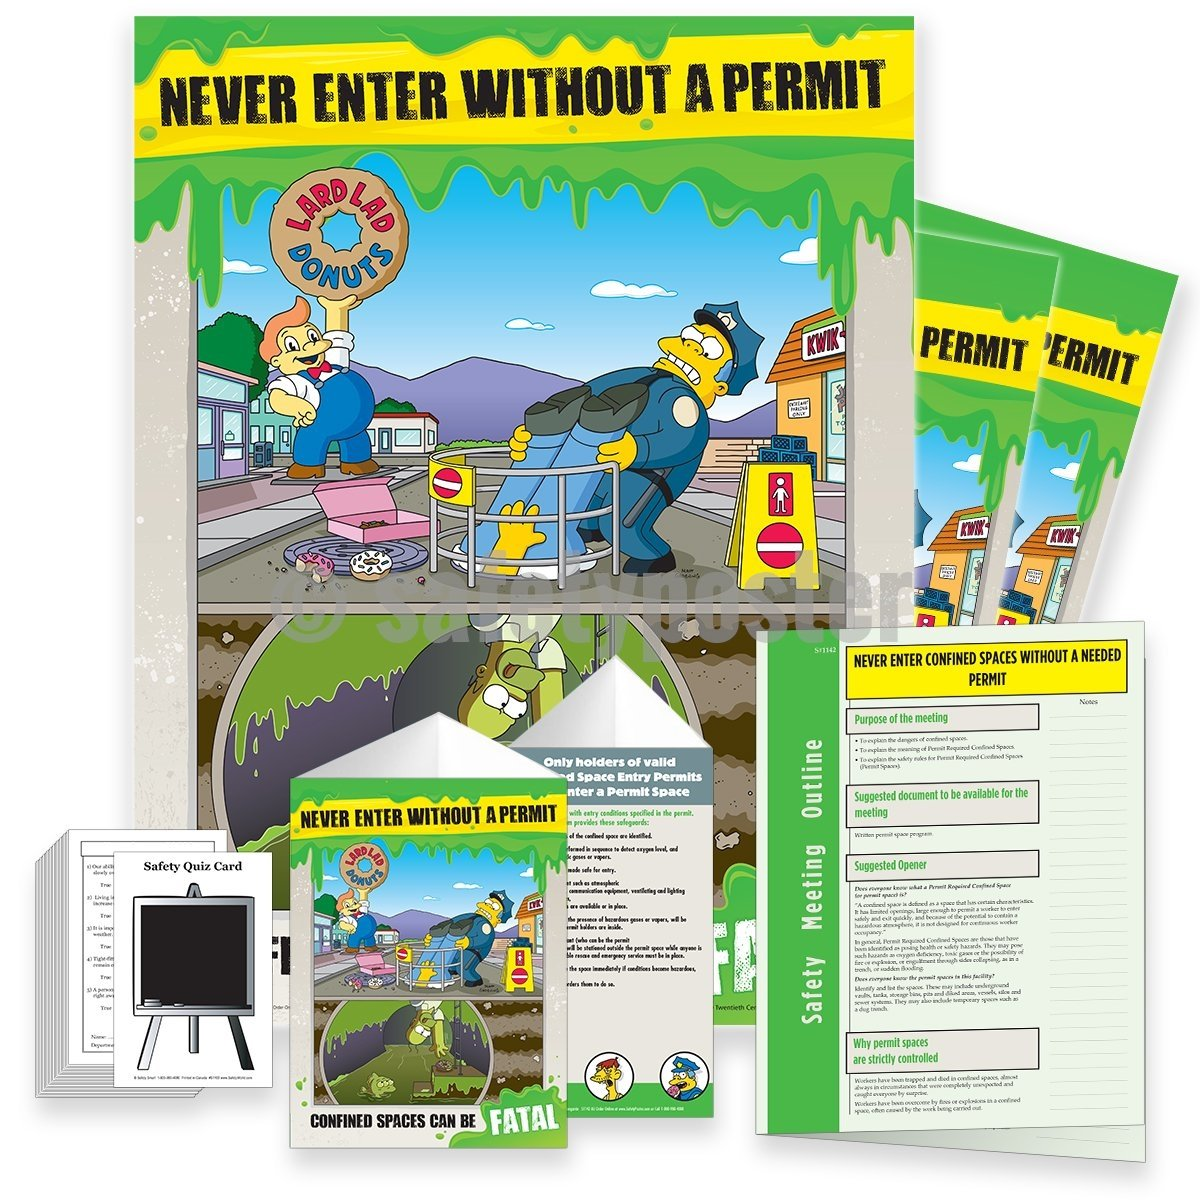 Safety Meeting Kit - Never Enter Without A Permit Confined Spaces Can Be Fatal